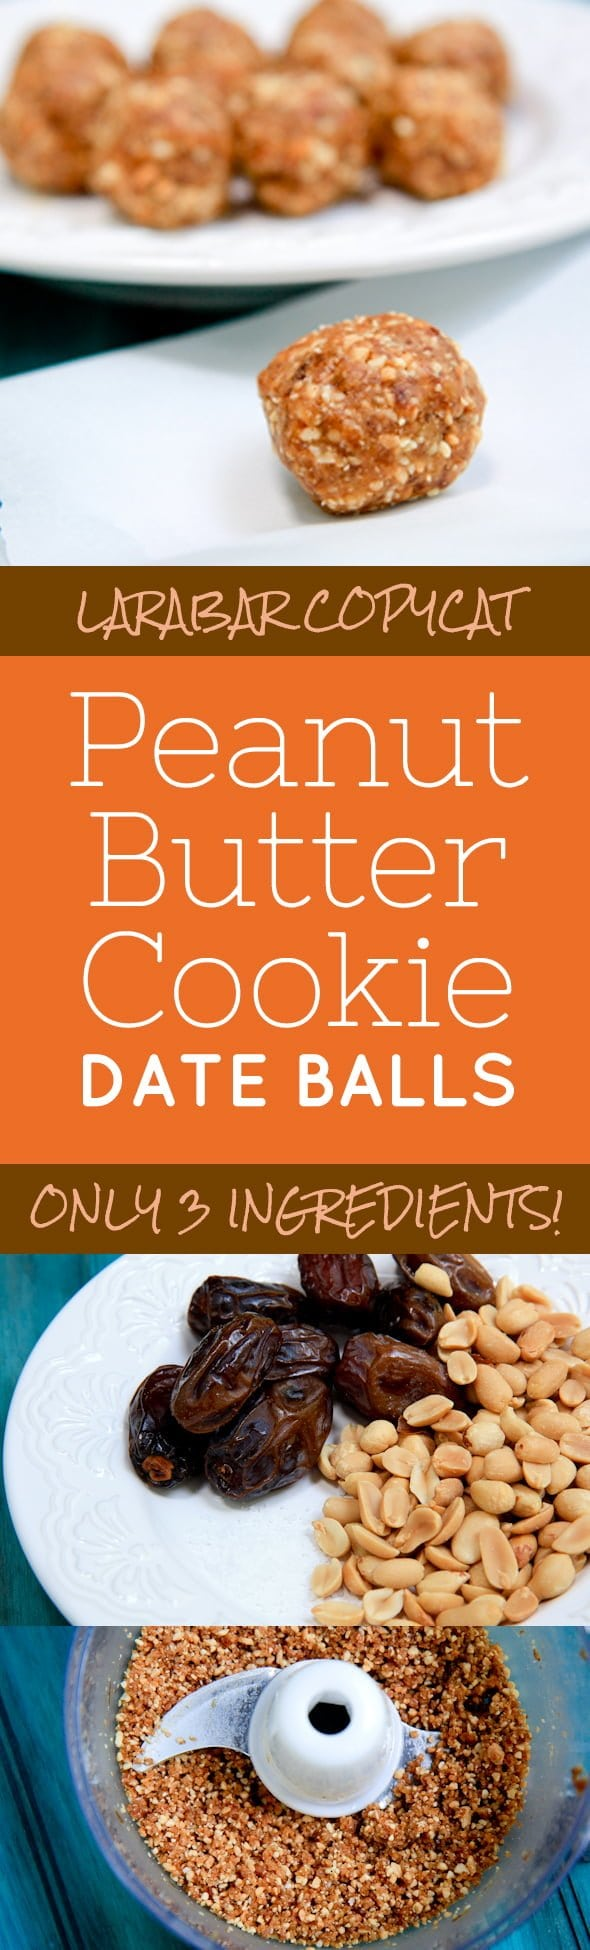 Peanut Butter Cookie Date Balls